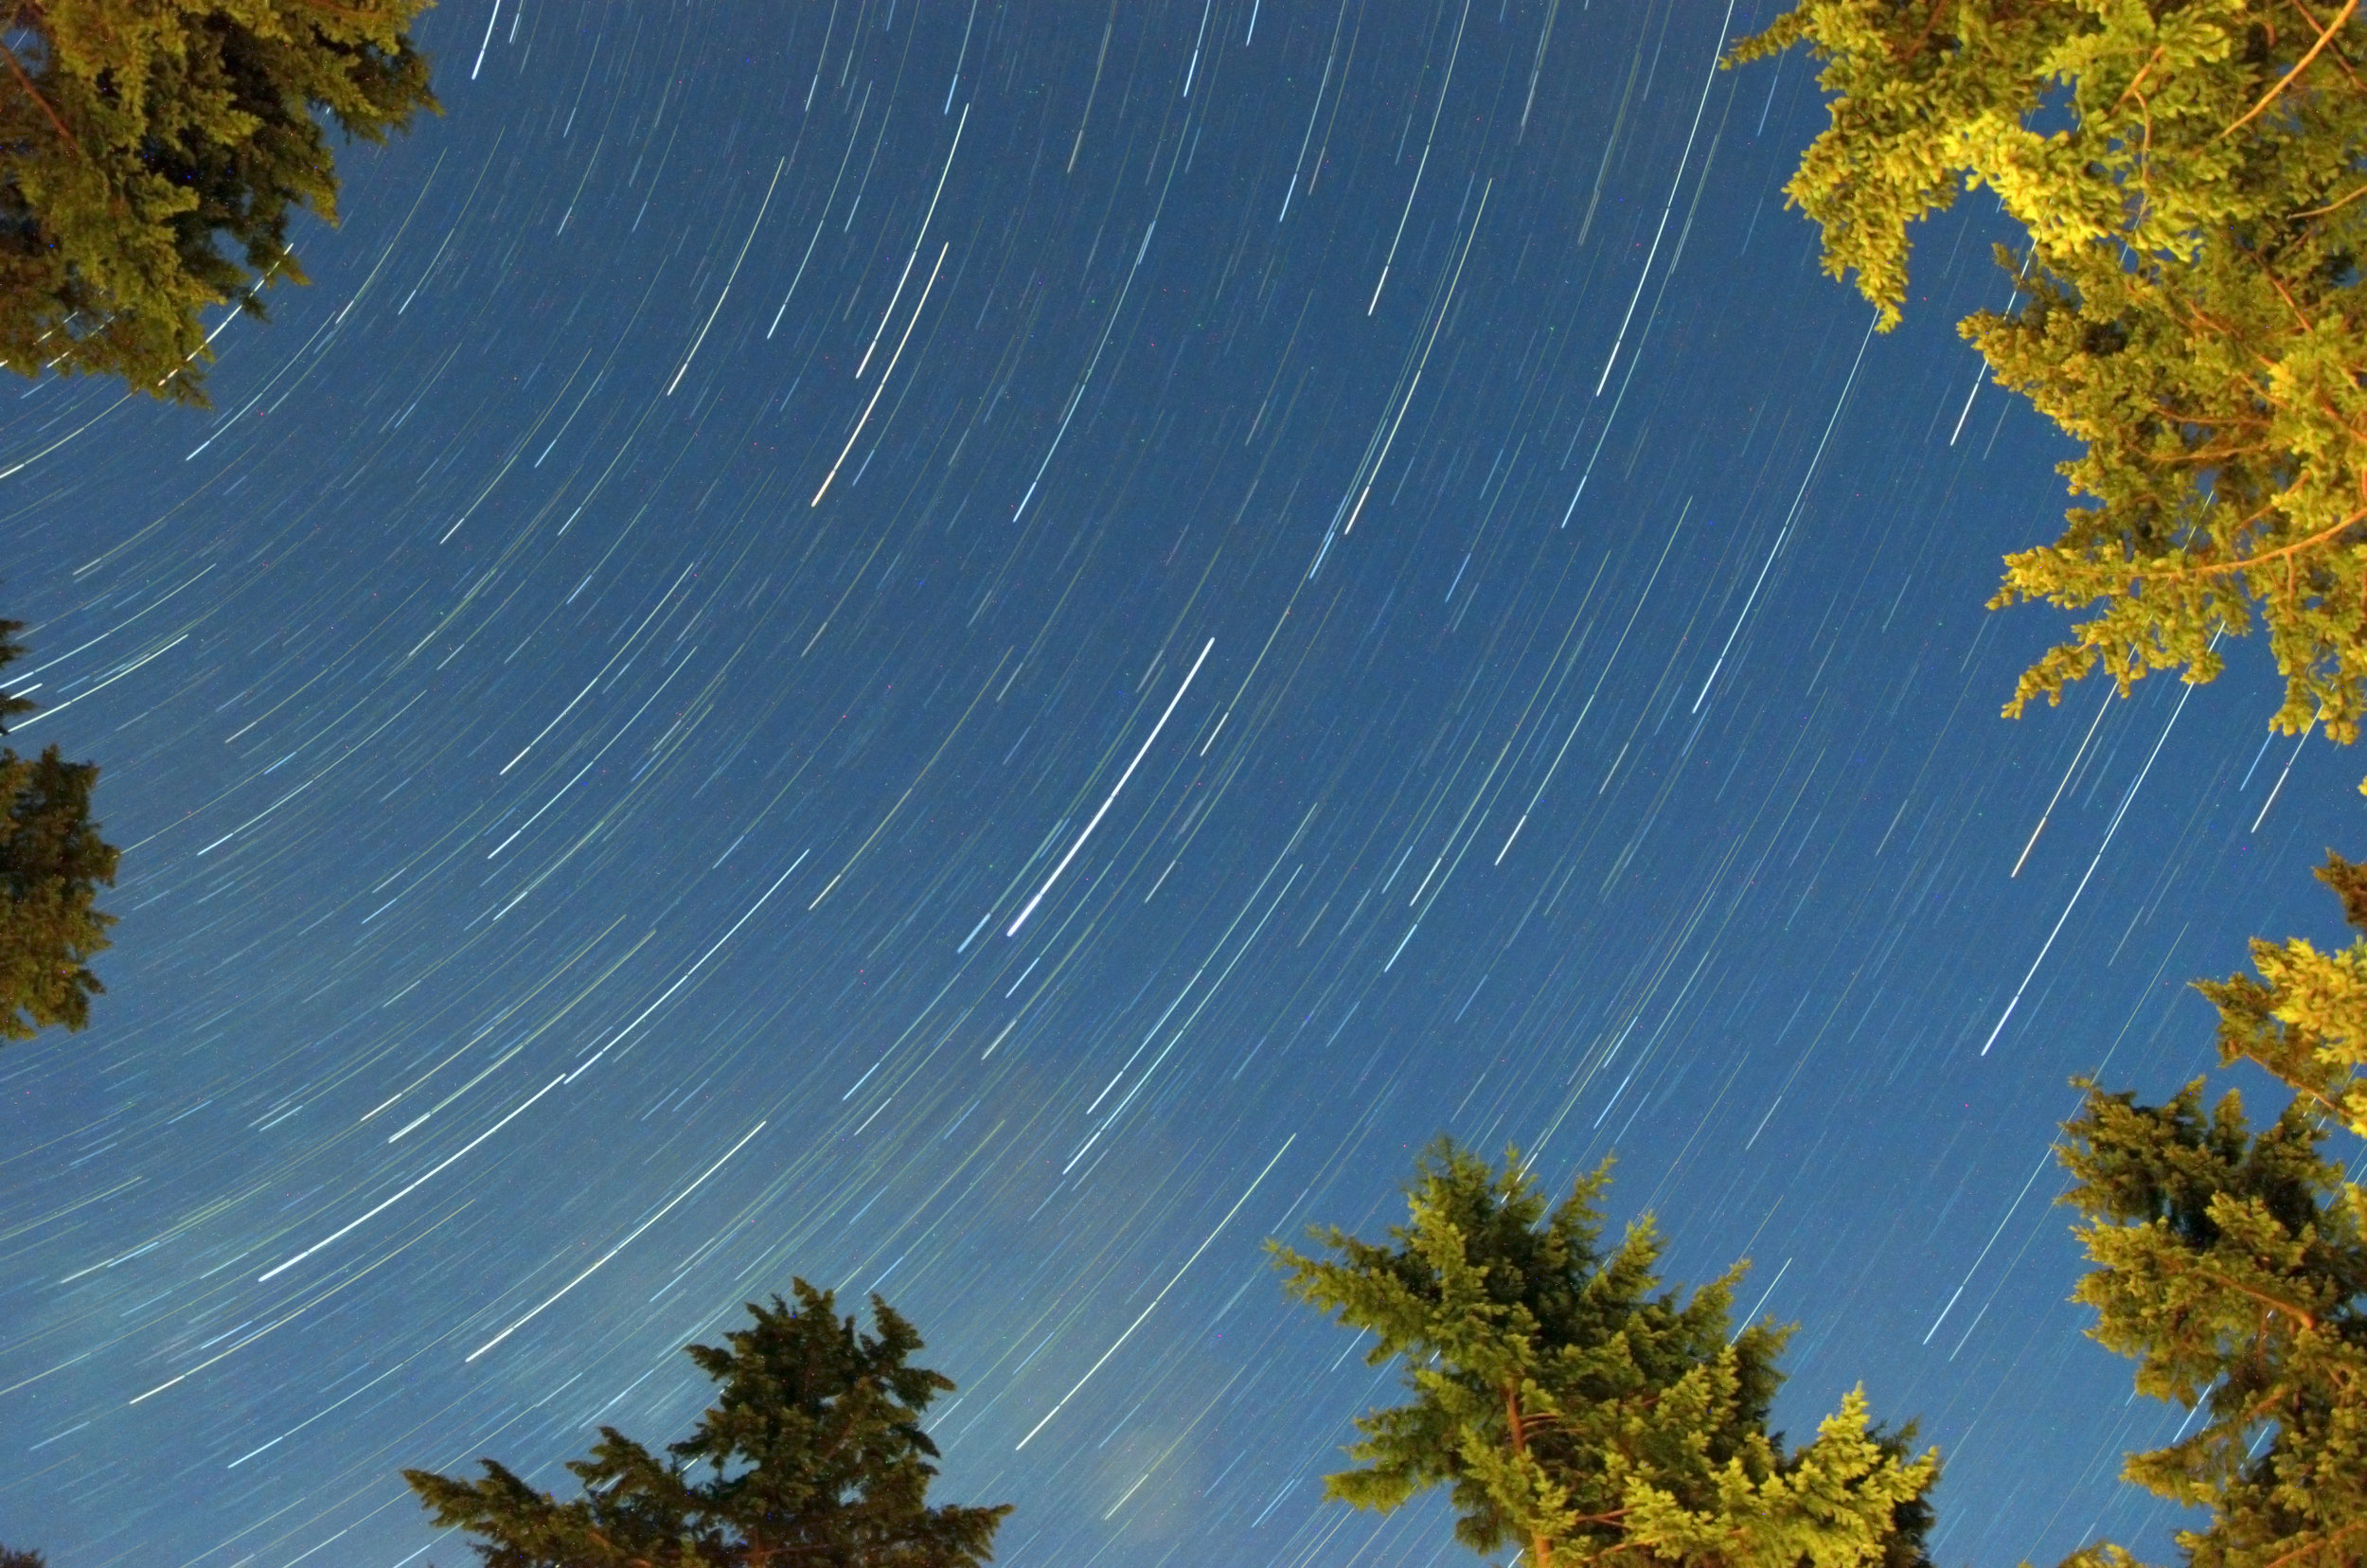 Star trails at Pender Island